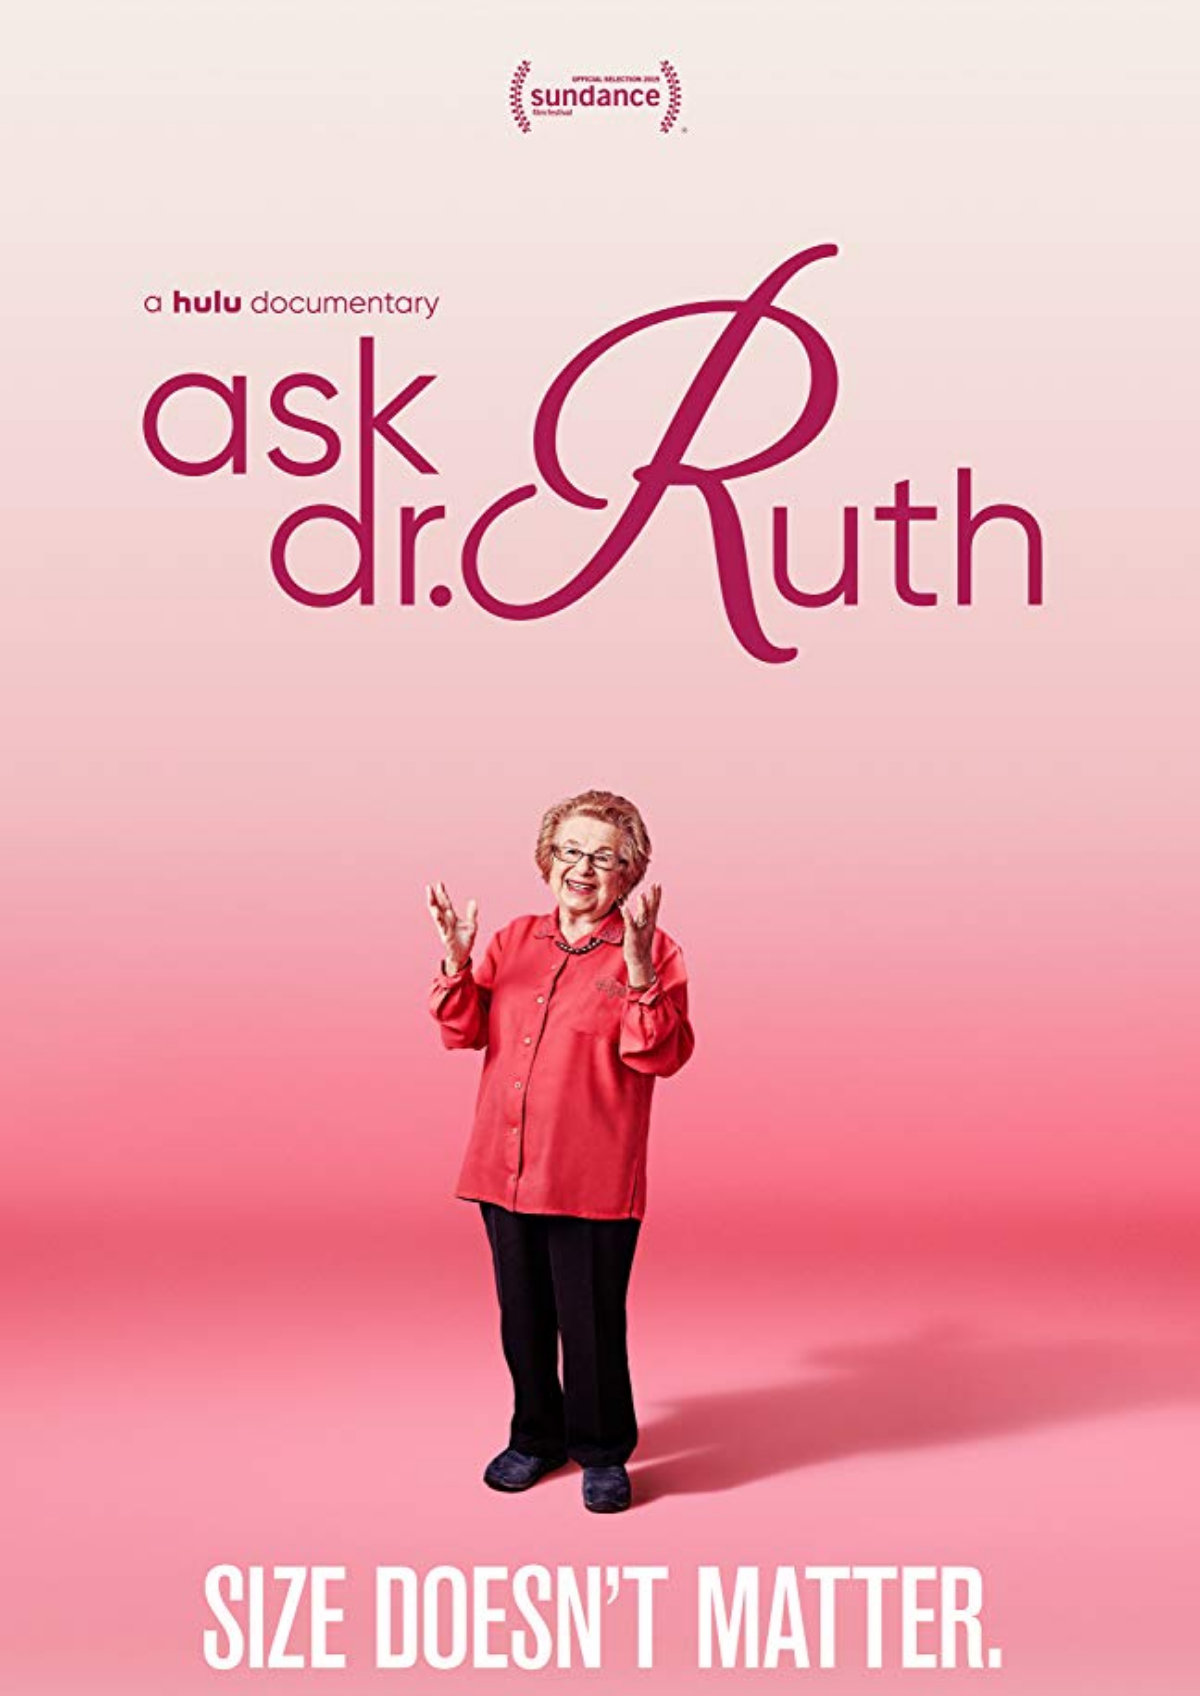 'Ask Dr. Ruth' movie poster